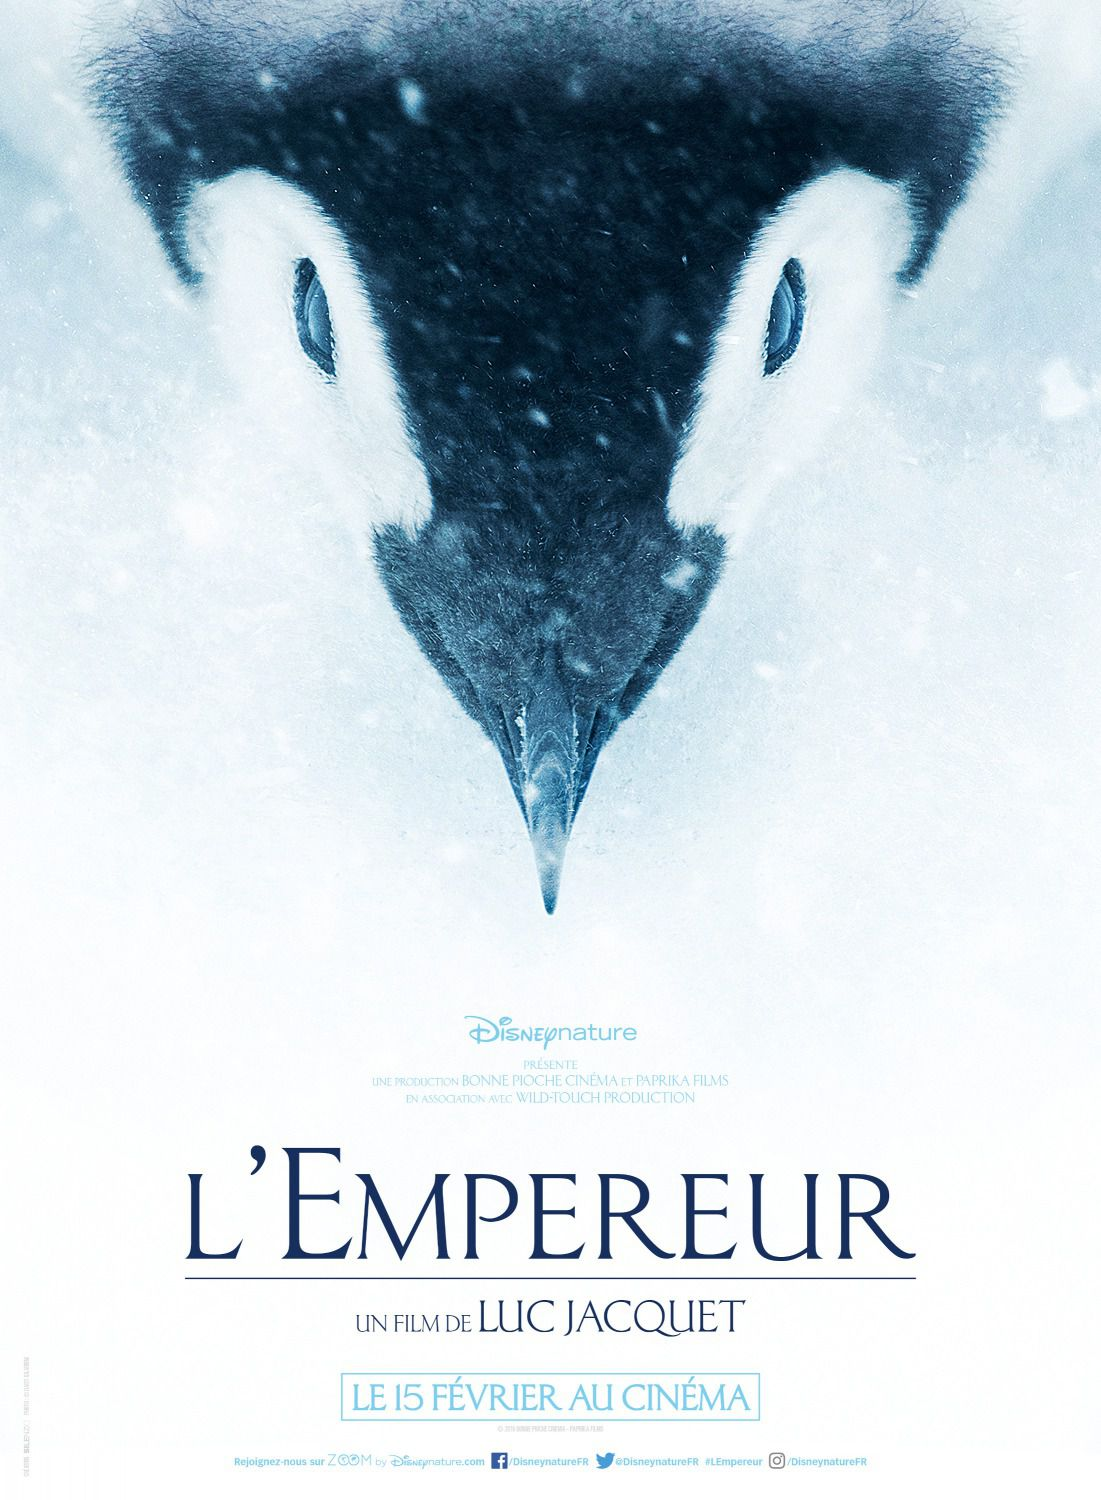 March of the Penguins 2 the next step - Lempereur - film poster